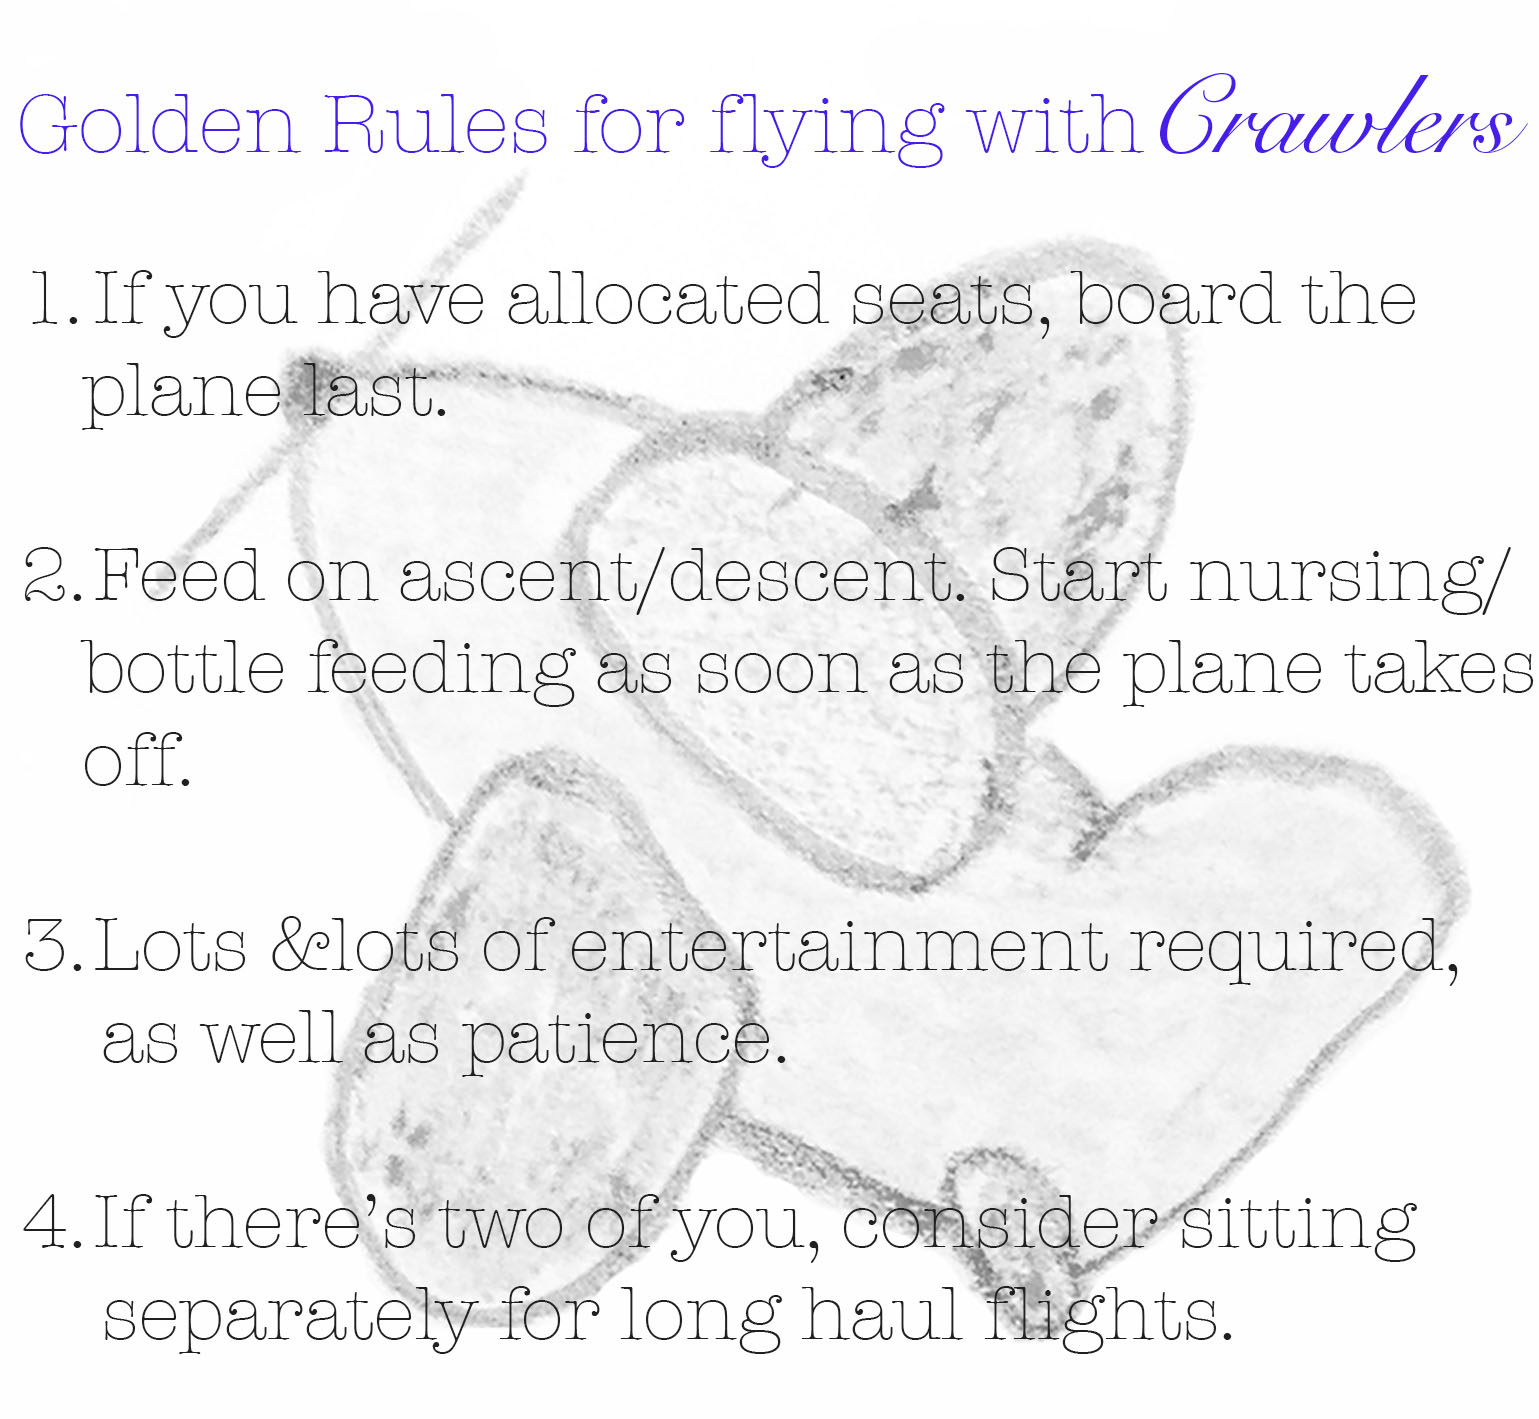 meg-made golden rules for flying with crawlers